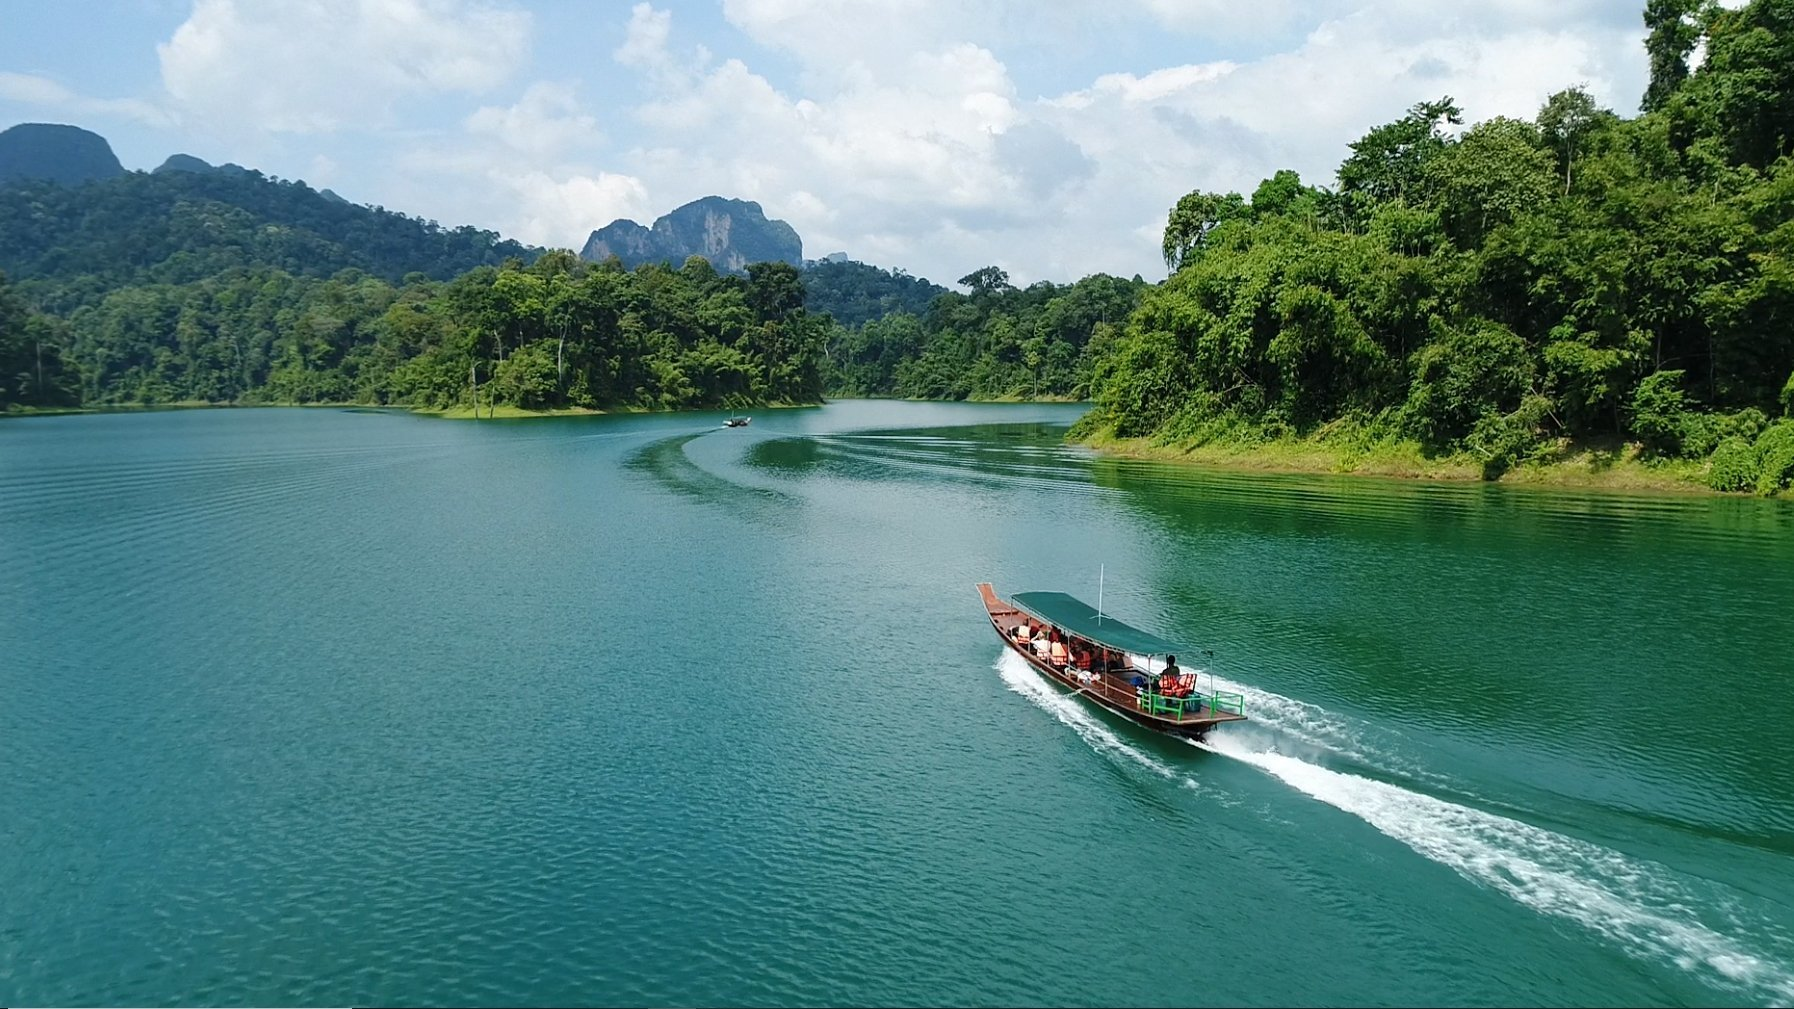 A Khao Sok National Park tour boating on Cheow Larn Lake